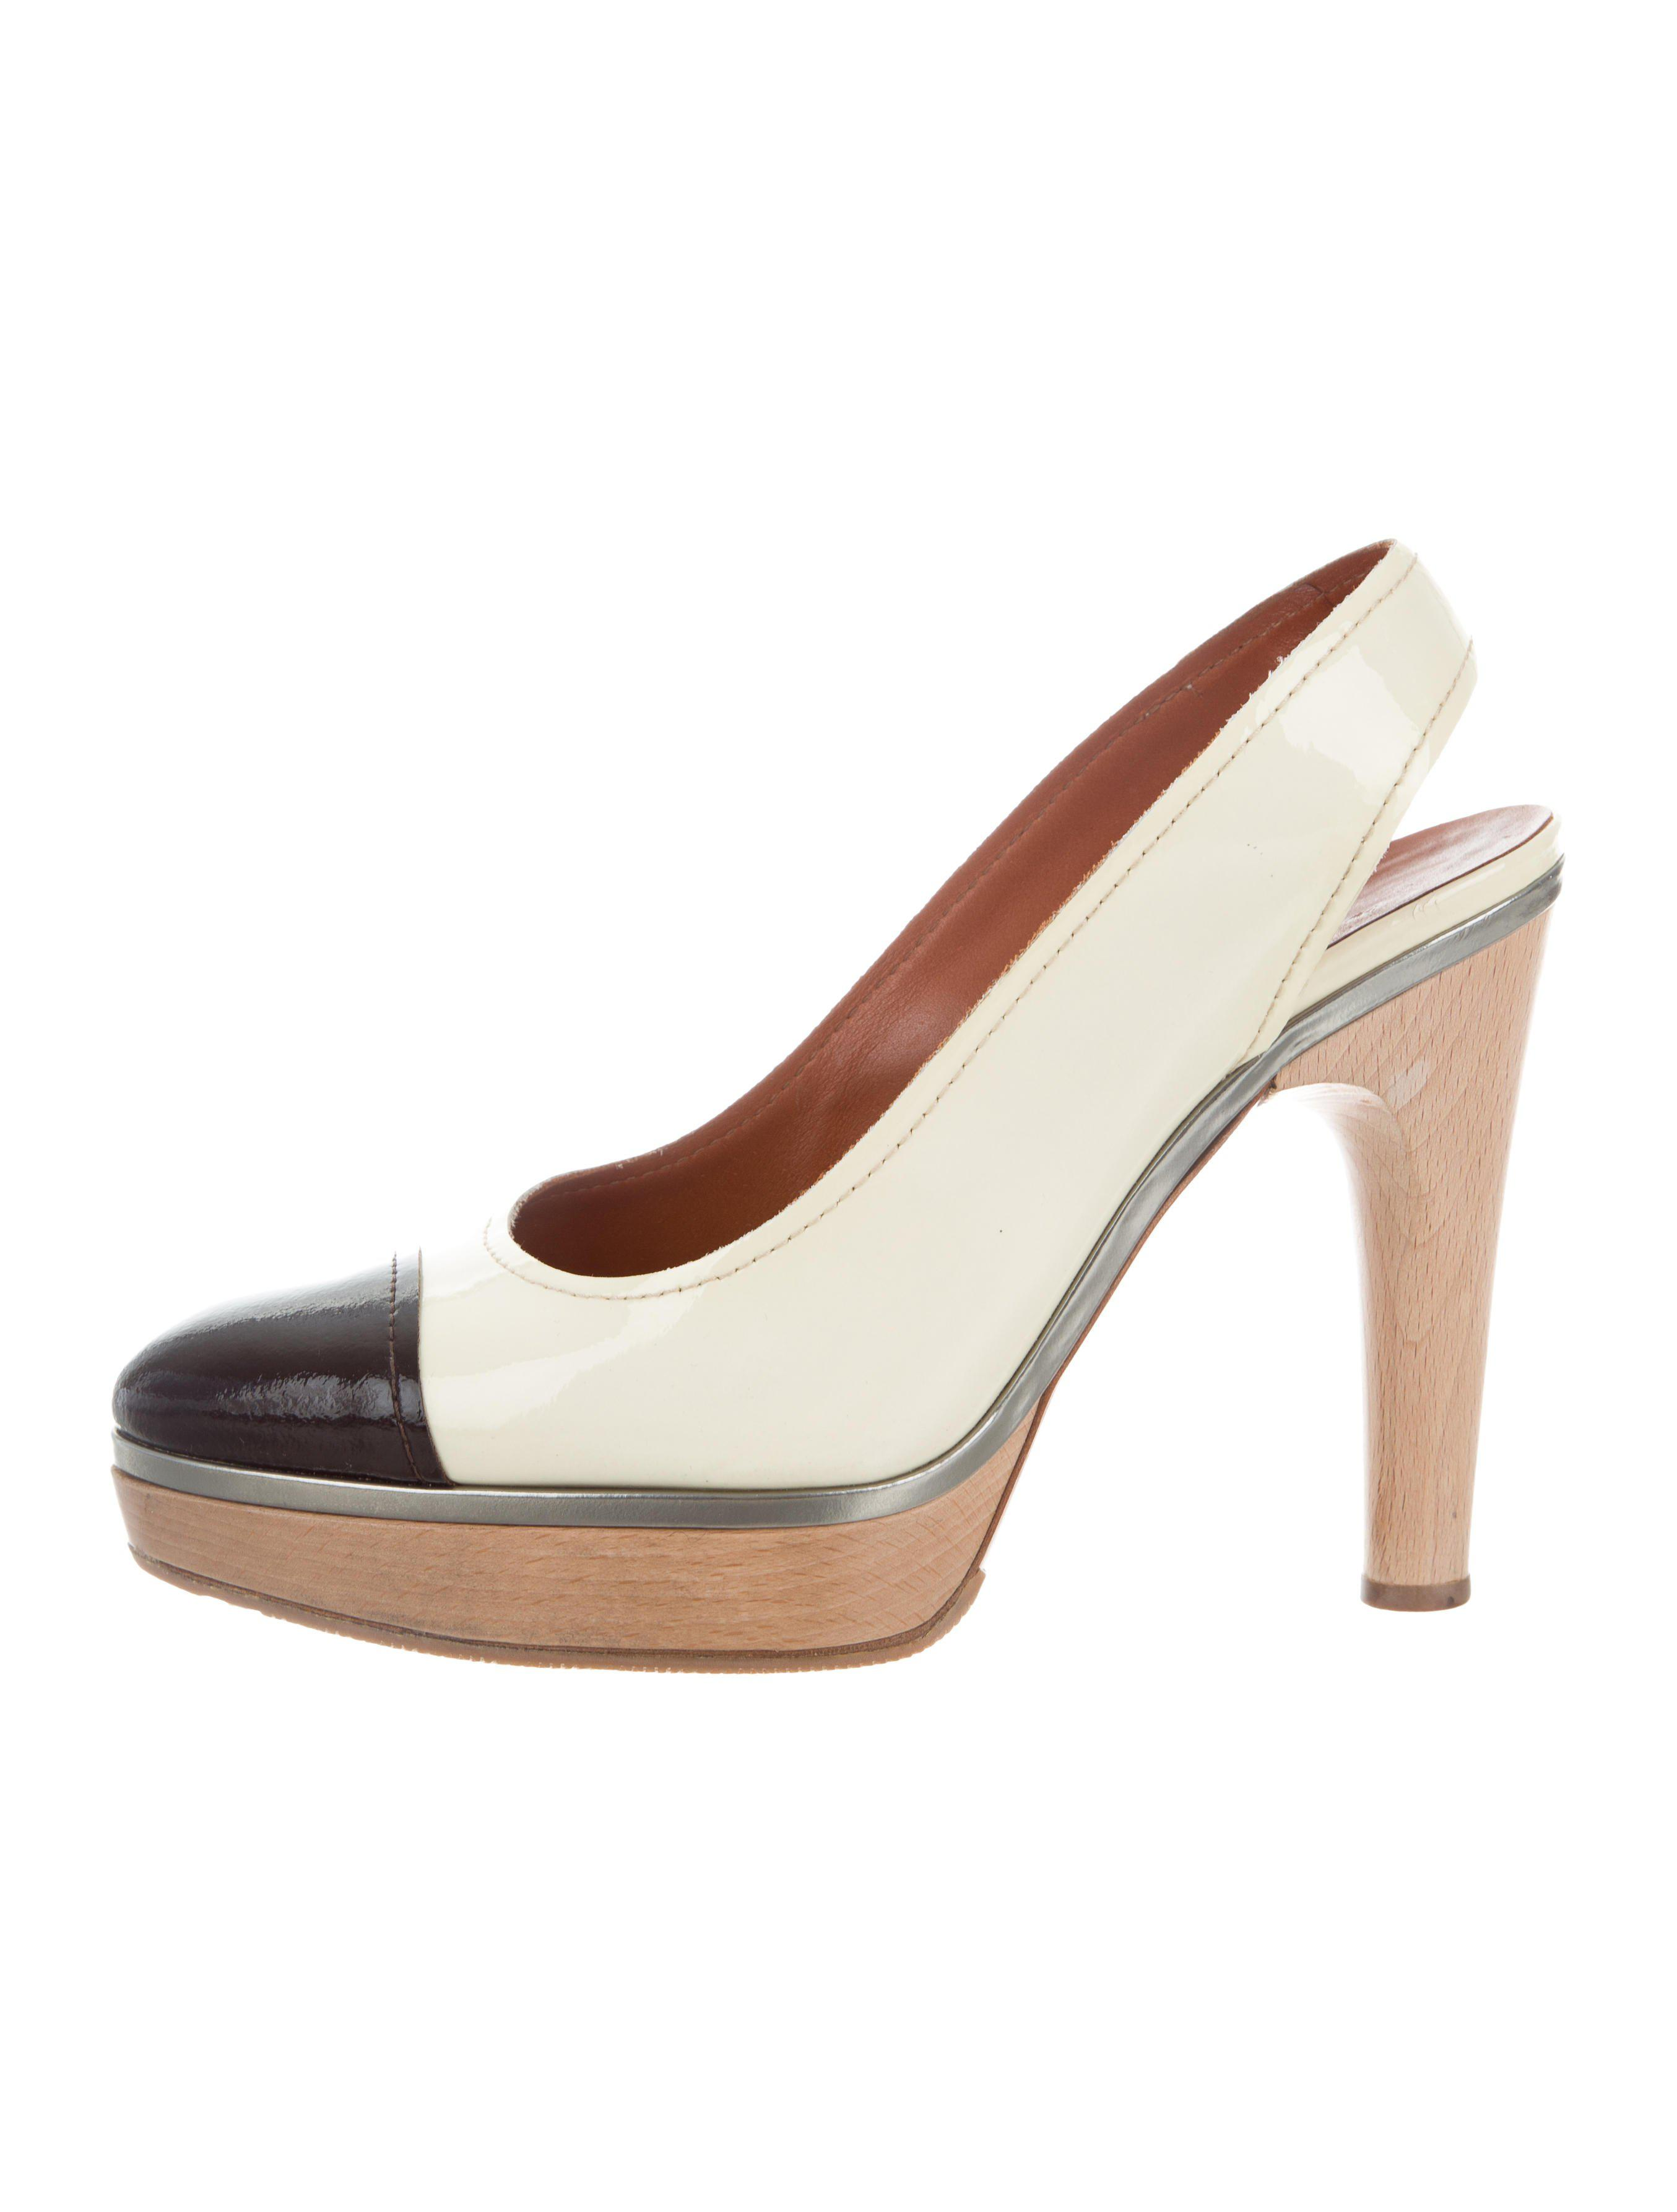 cheap browse clearance for nice Lanvin Slingback Platform Pumps IPlyeaLV5